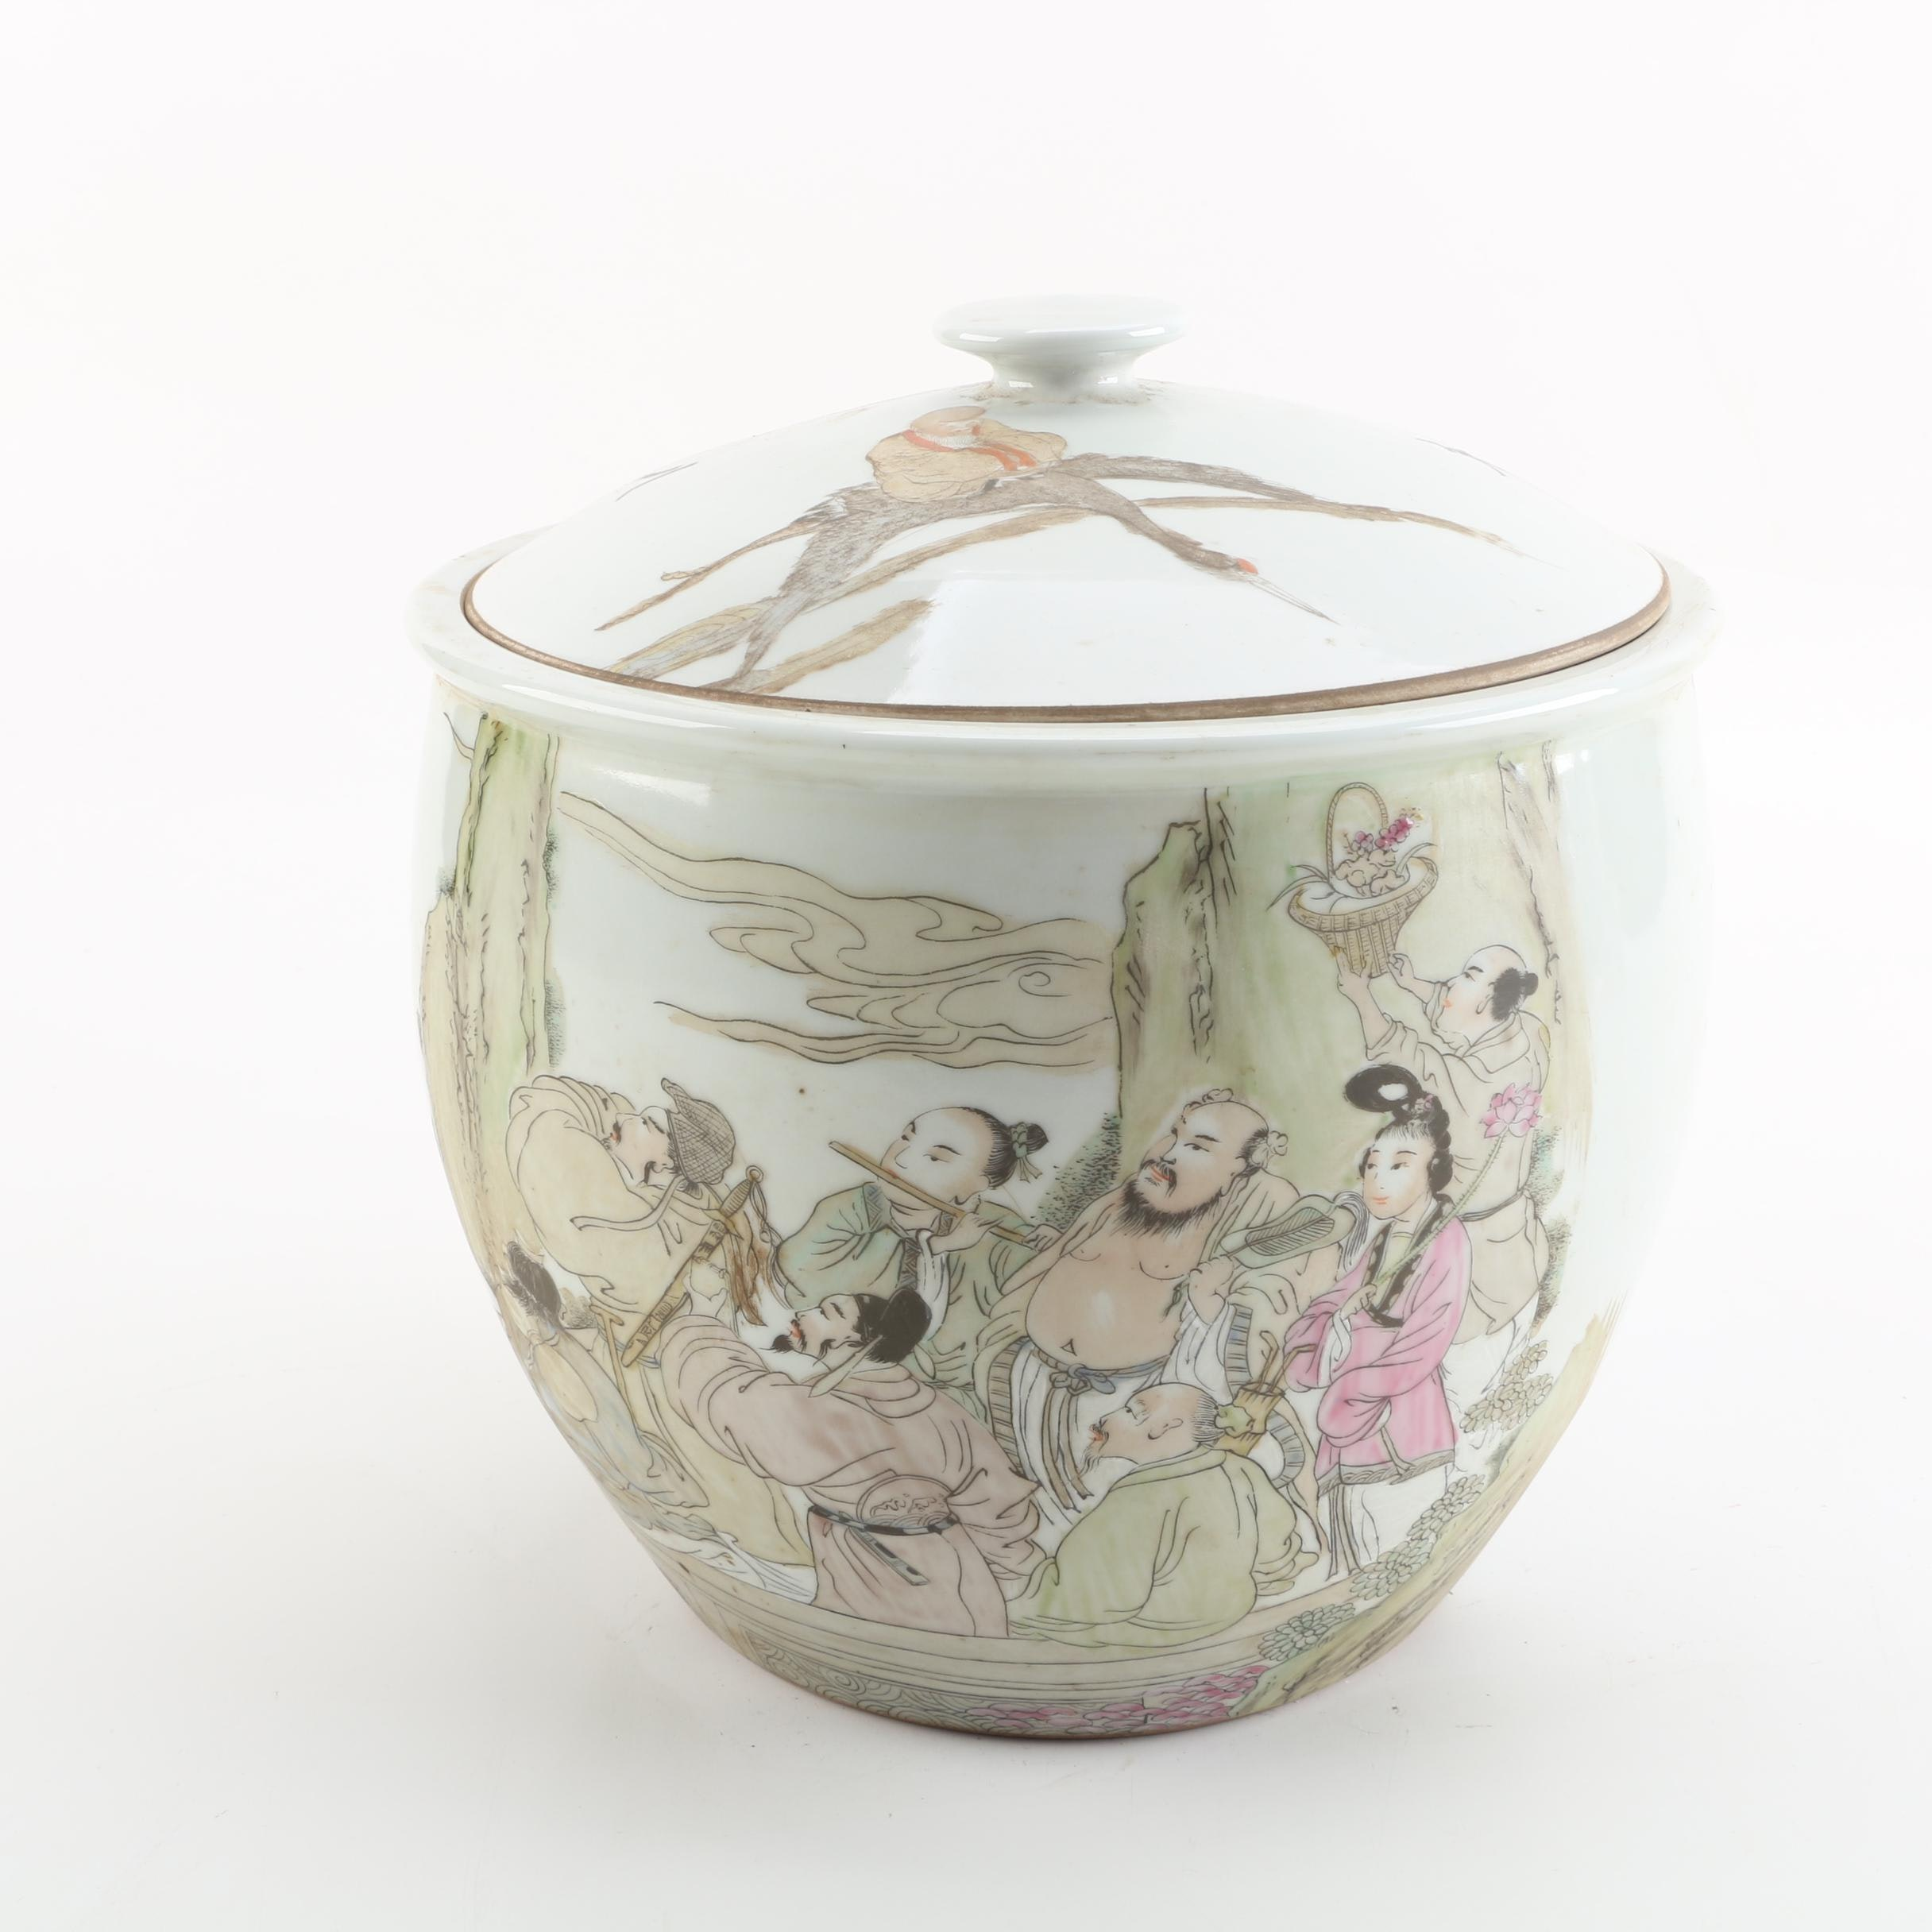 Chinese Hand-Painted Figurative Porcelain Lidded Jar